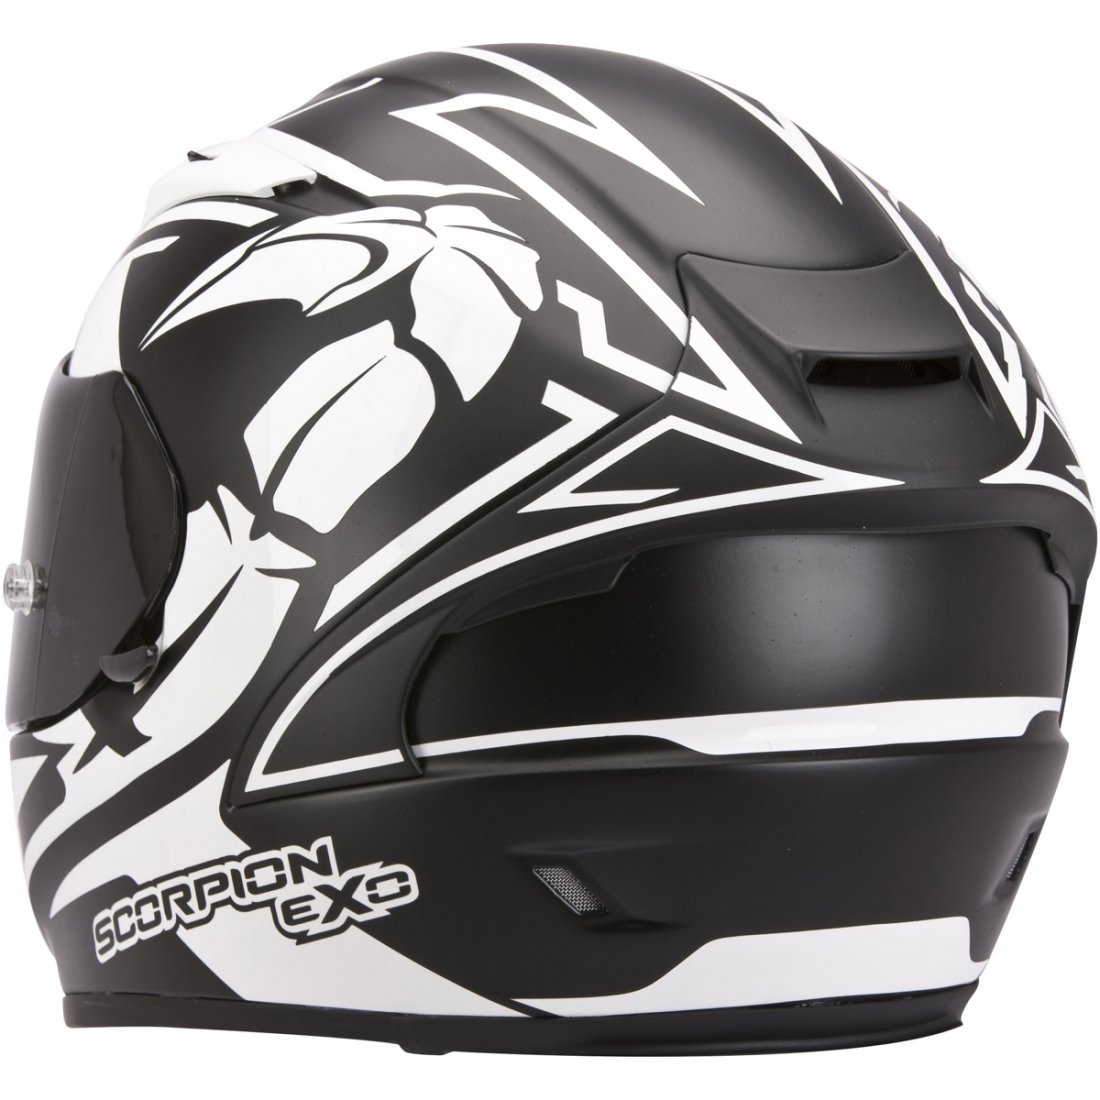 casco scorpion exo 2000 evo air track matt black white motocard. Black Bedroom Furniture Sets. Home Design Ideas